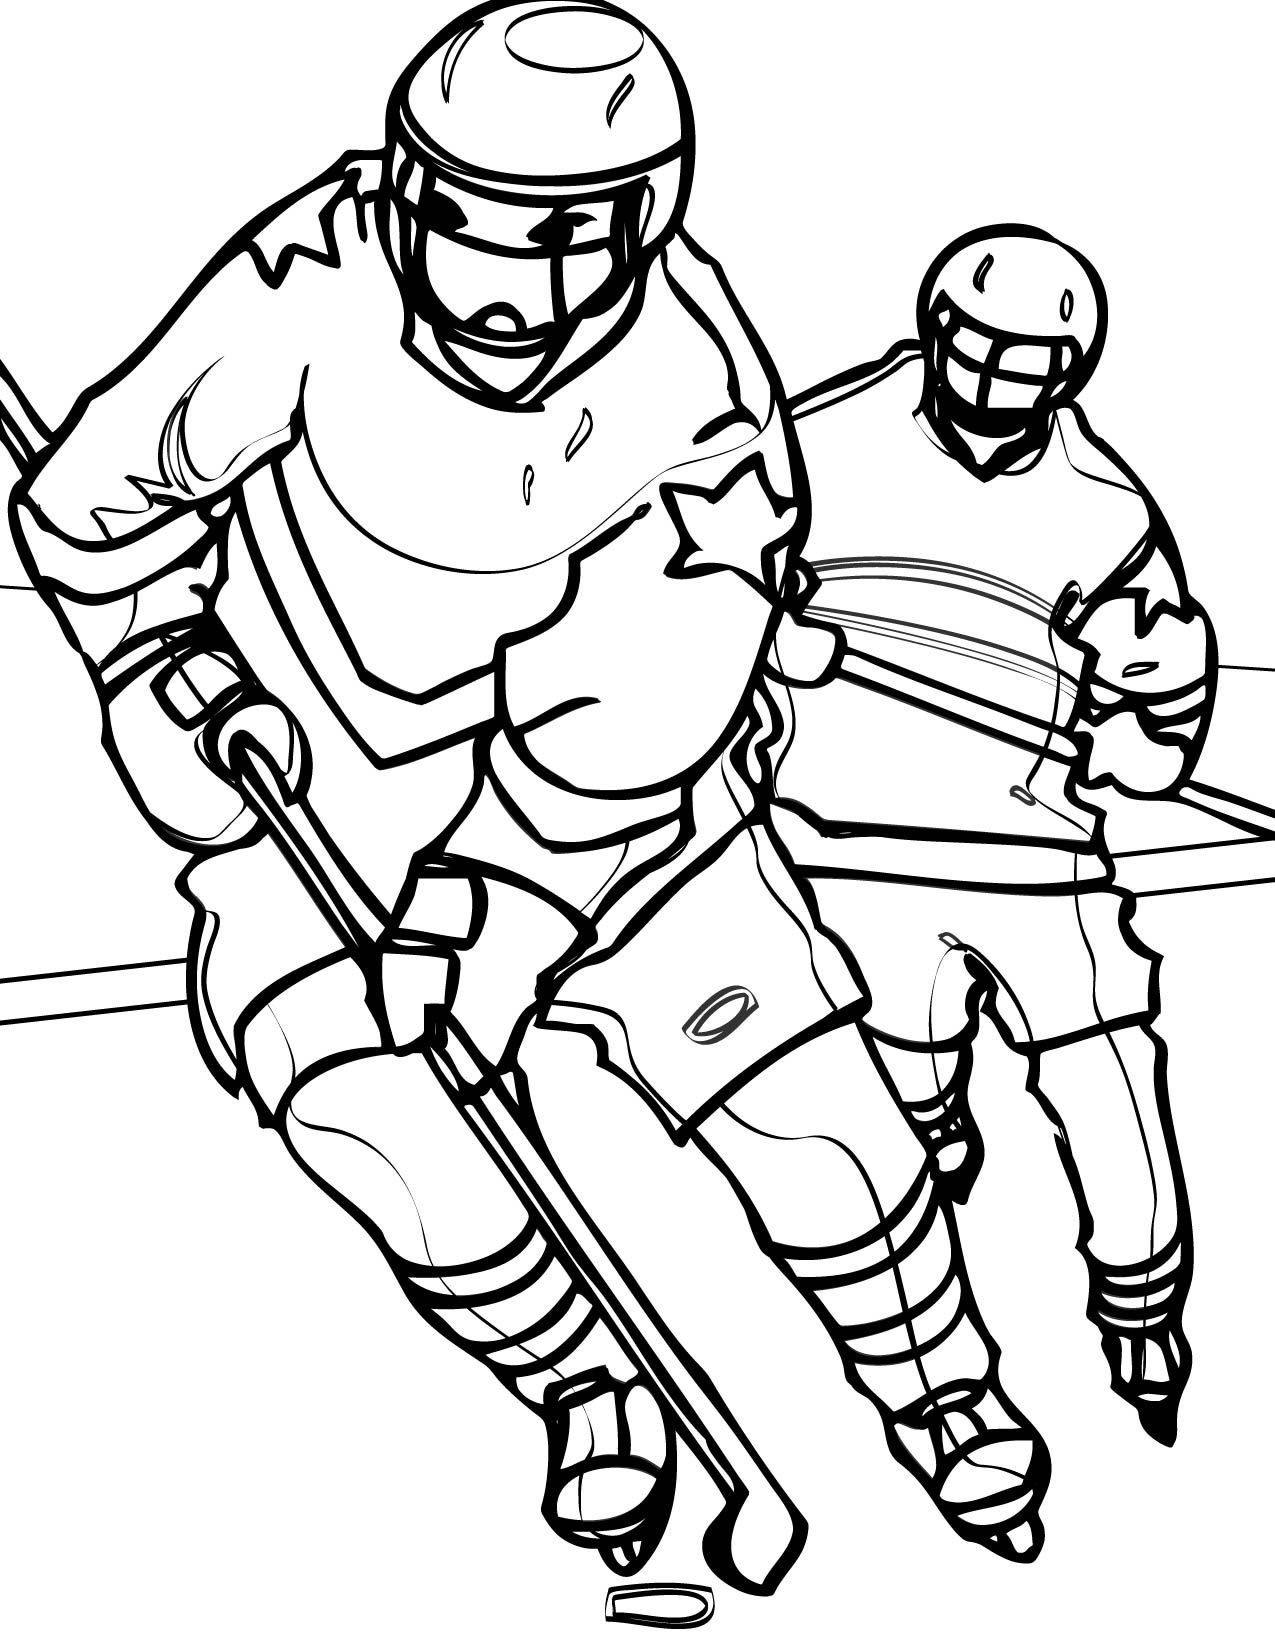 Coloring Pages Category For Stunning Sports Day Coloring Pages